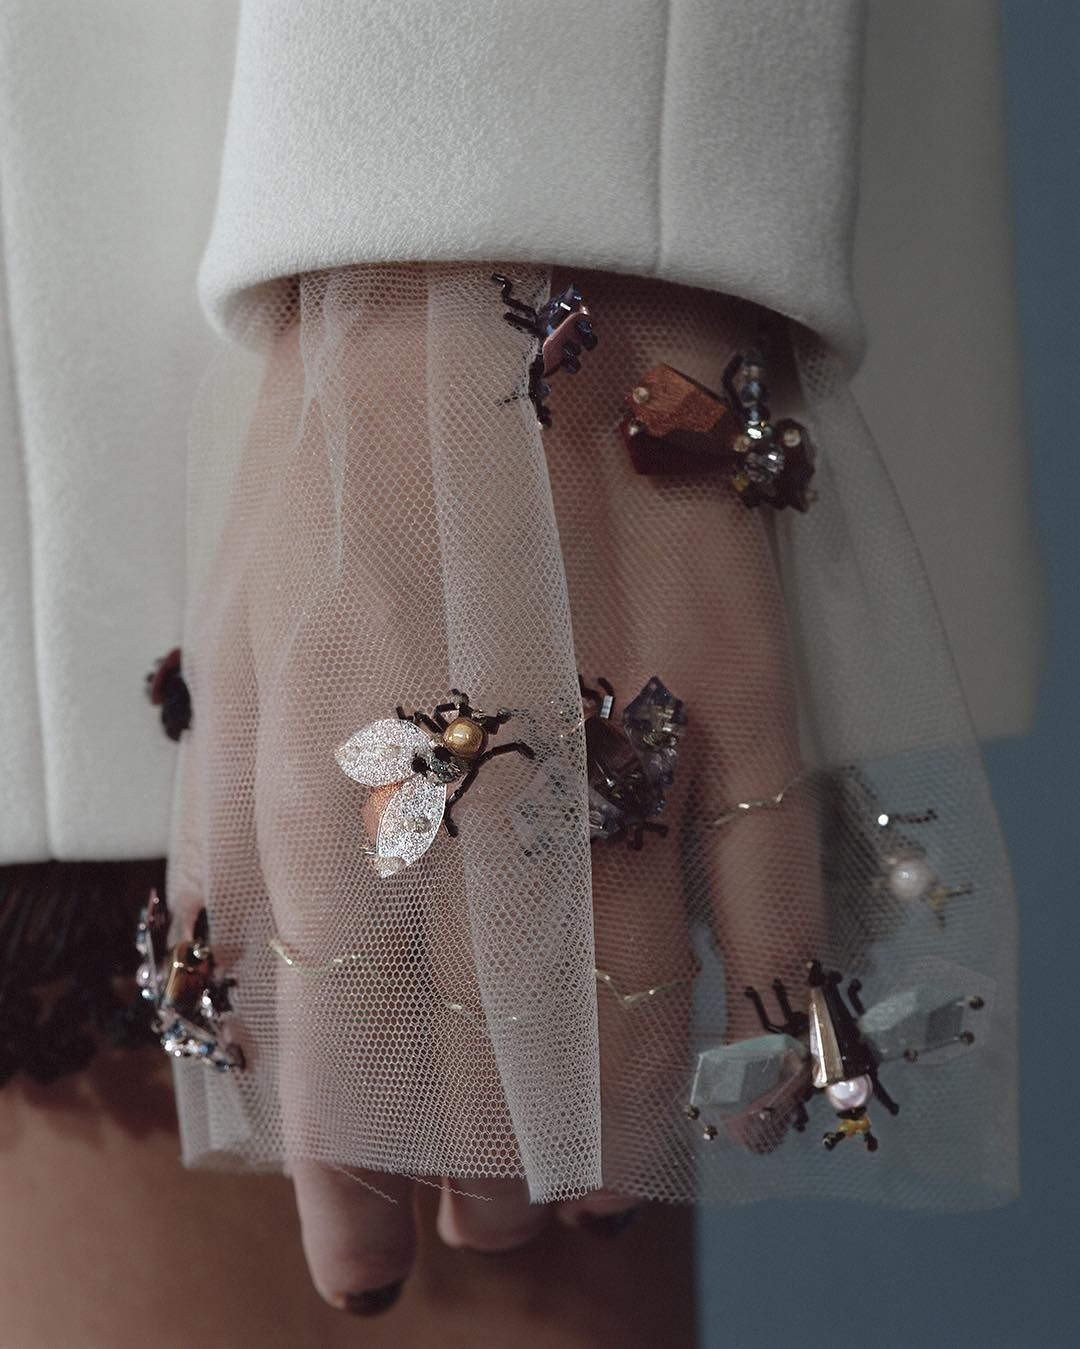 Cuff with brooches @Dior haute couture SS16 by Serge Ruffieux & Lucie Meyer